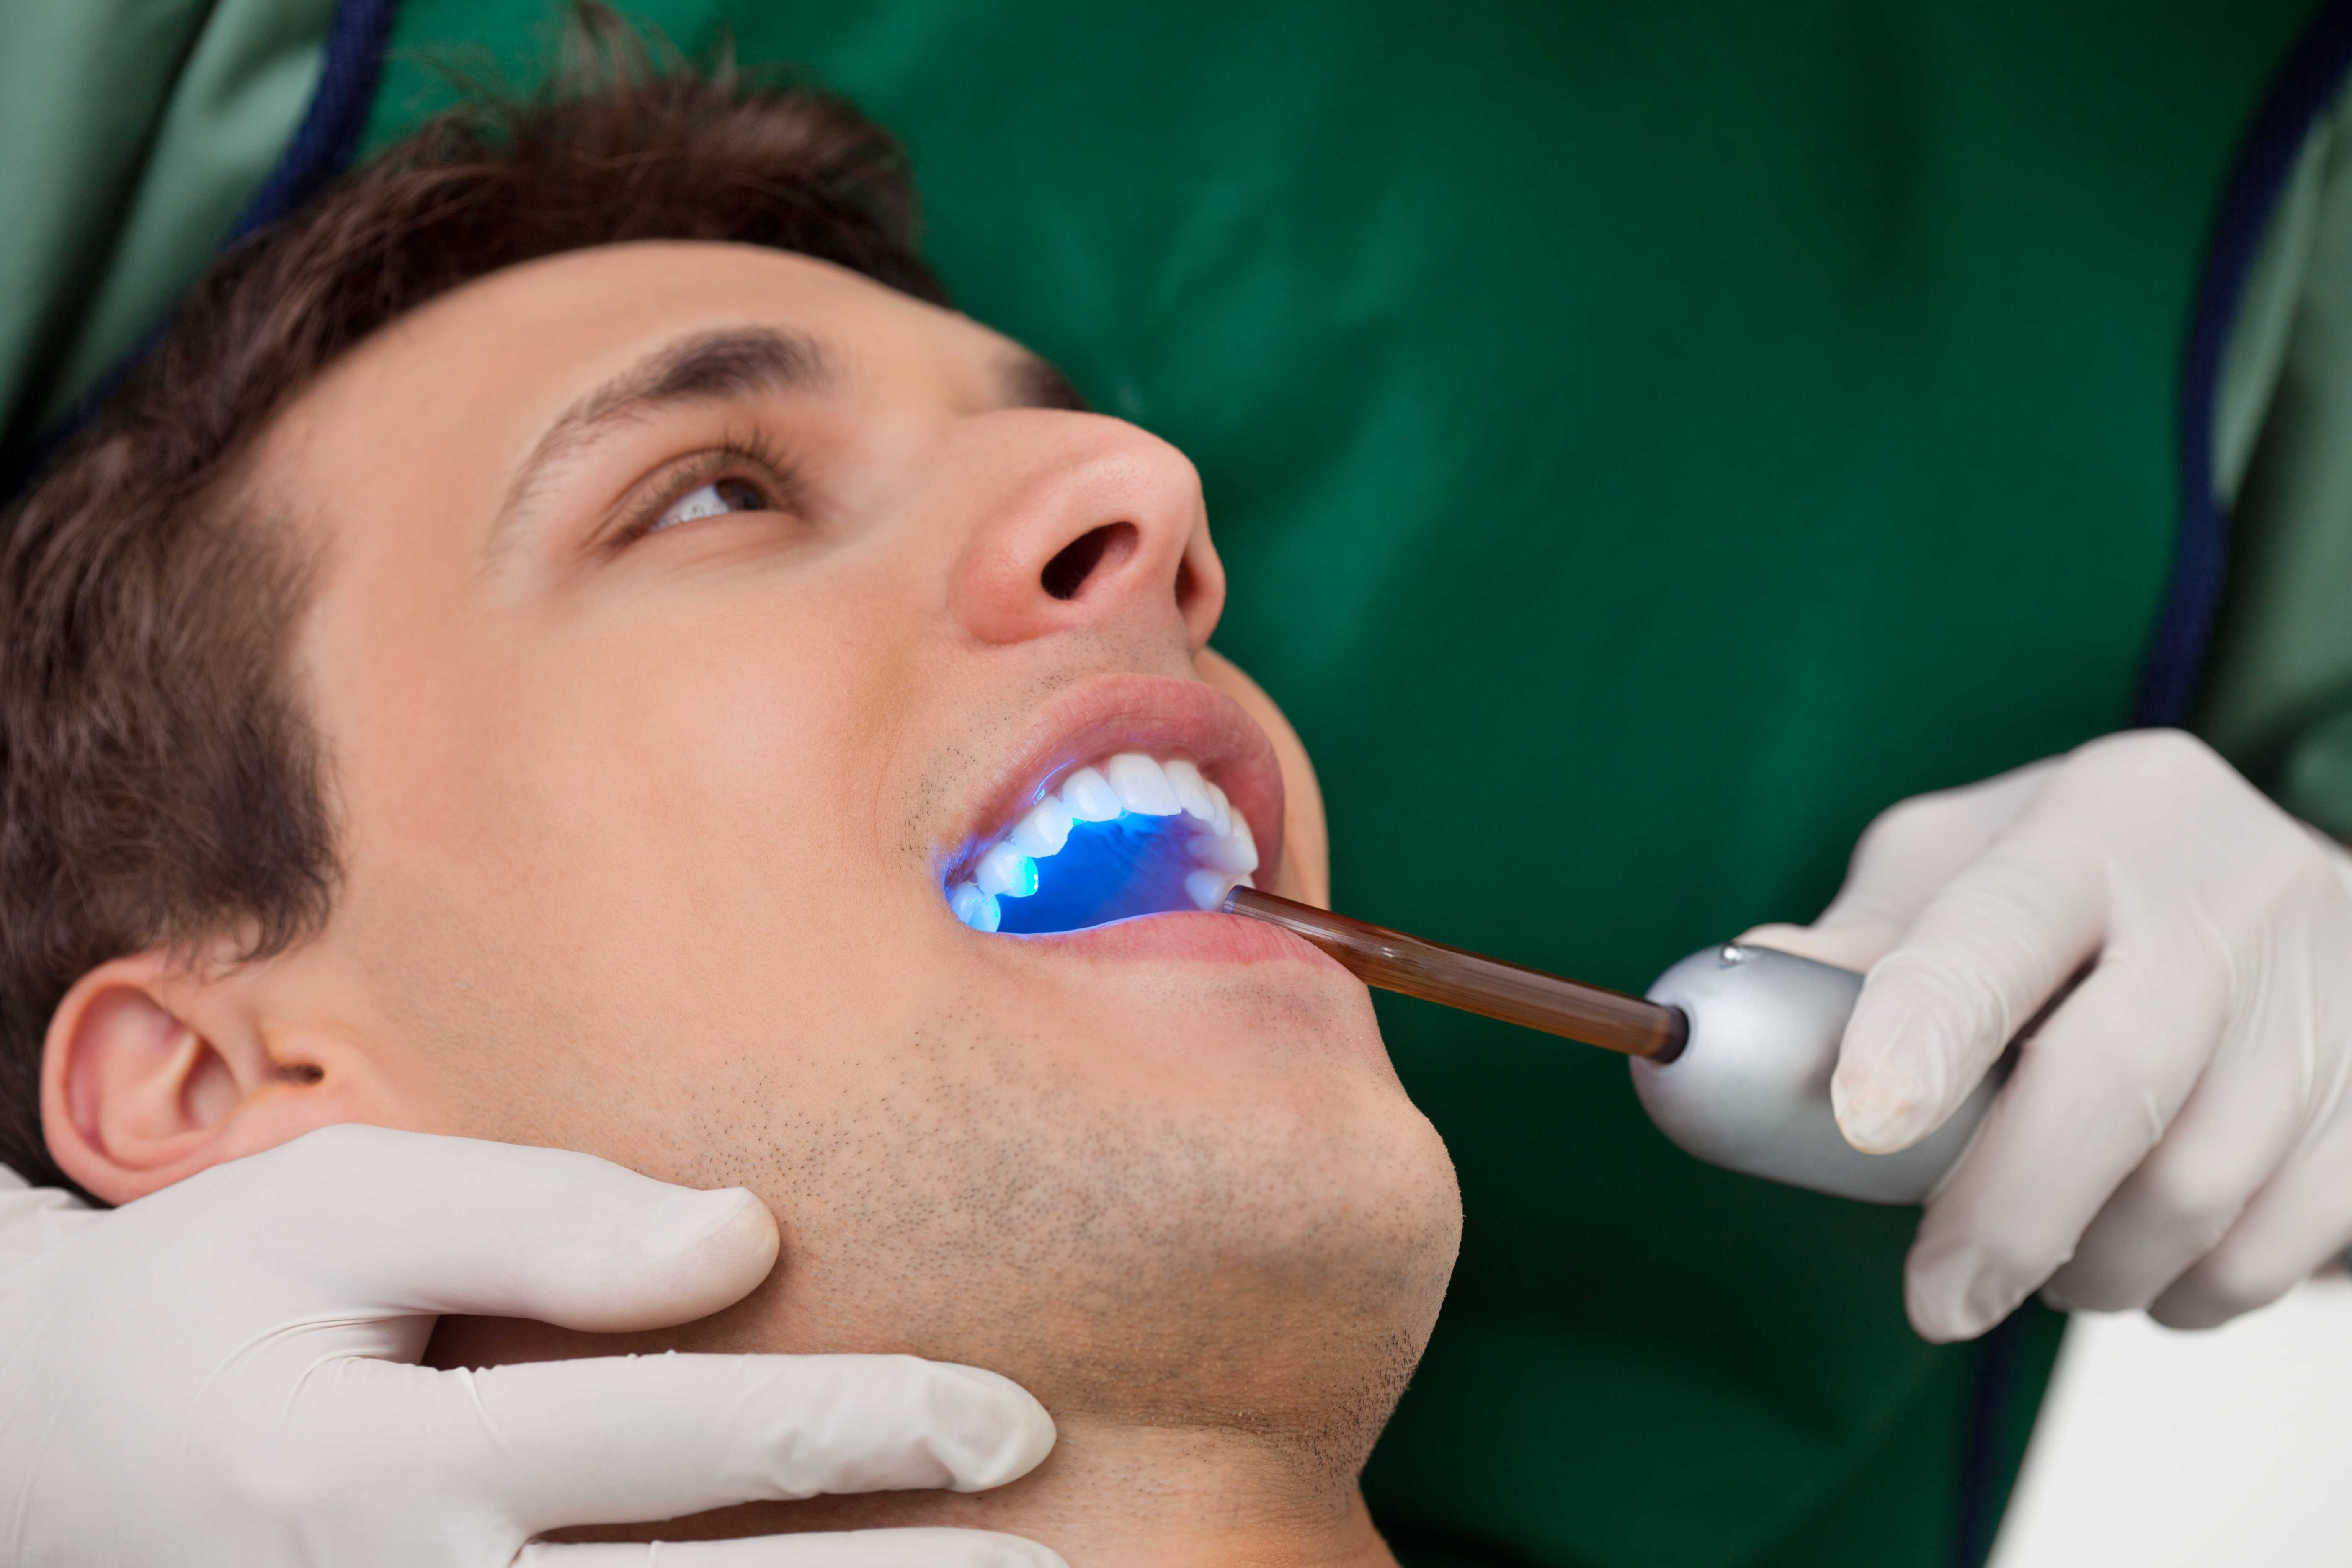 How an orthodontist can straighten adults' teeth – in secret